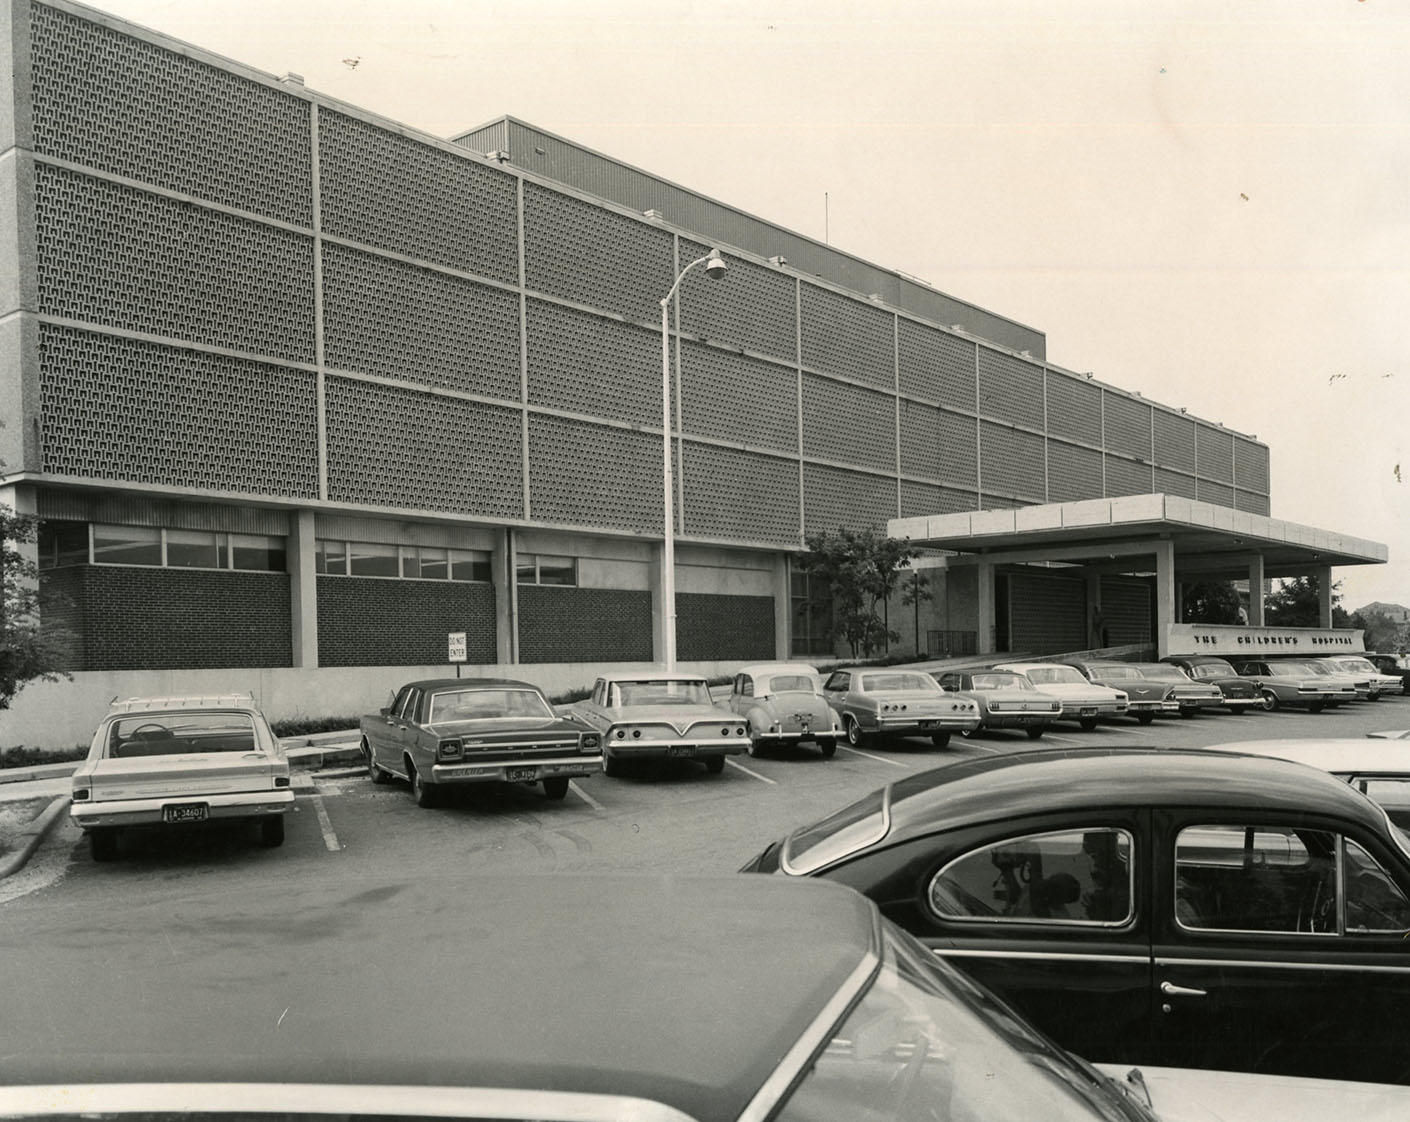 1961- New Children's Hospital Building Opens